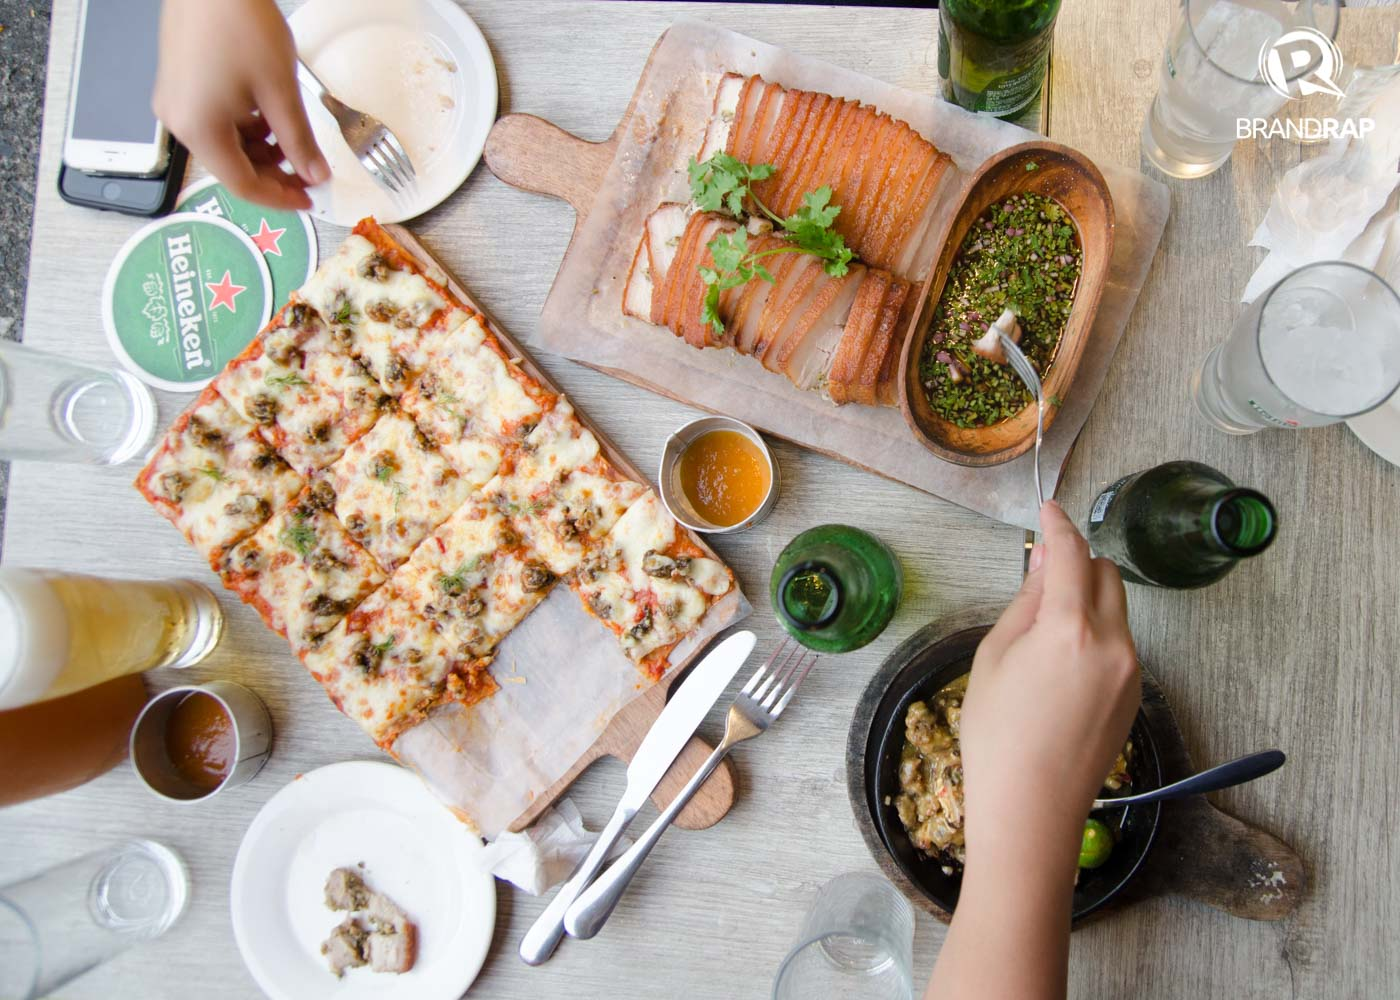 HEARTY. Habanero offers dishes infused by the habanero chili peppers like the Mussels Sisig Pizza, Oysters Sisig, and Lechon Habanero. Photo by Pauee Cadaing/Rappler